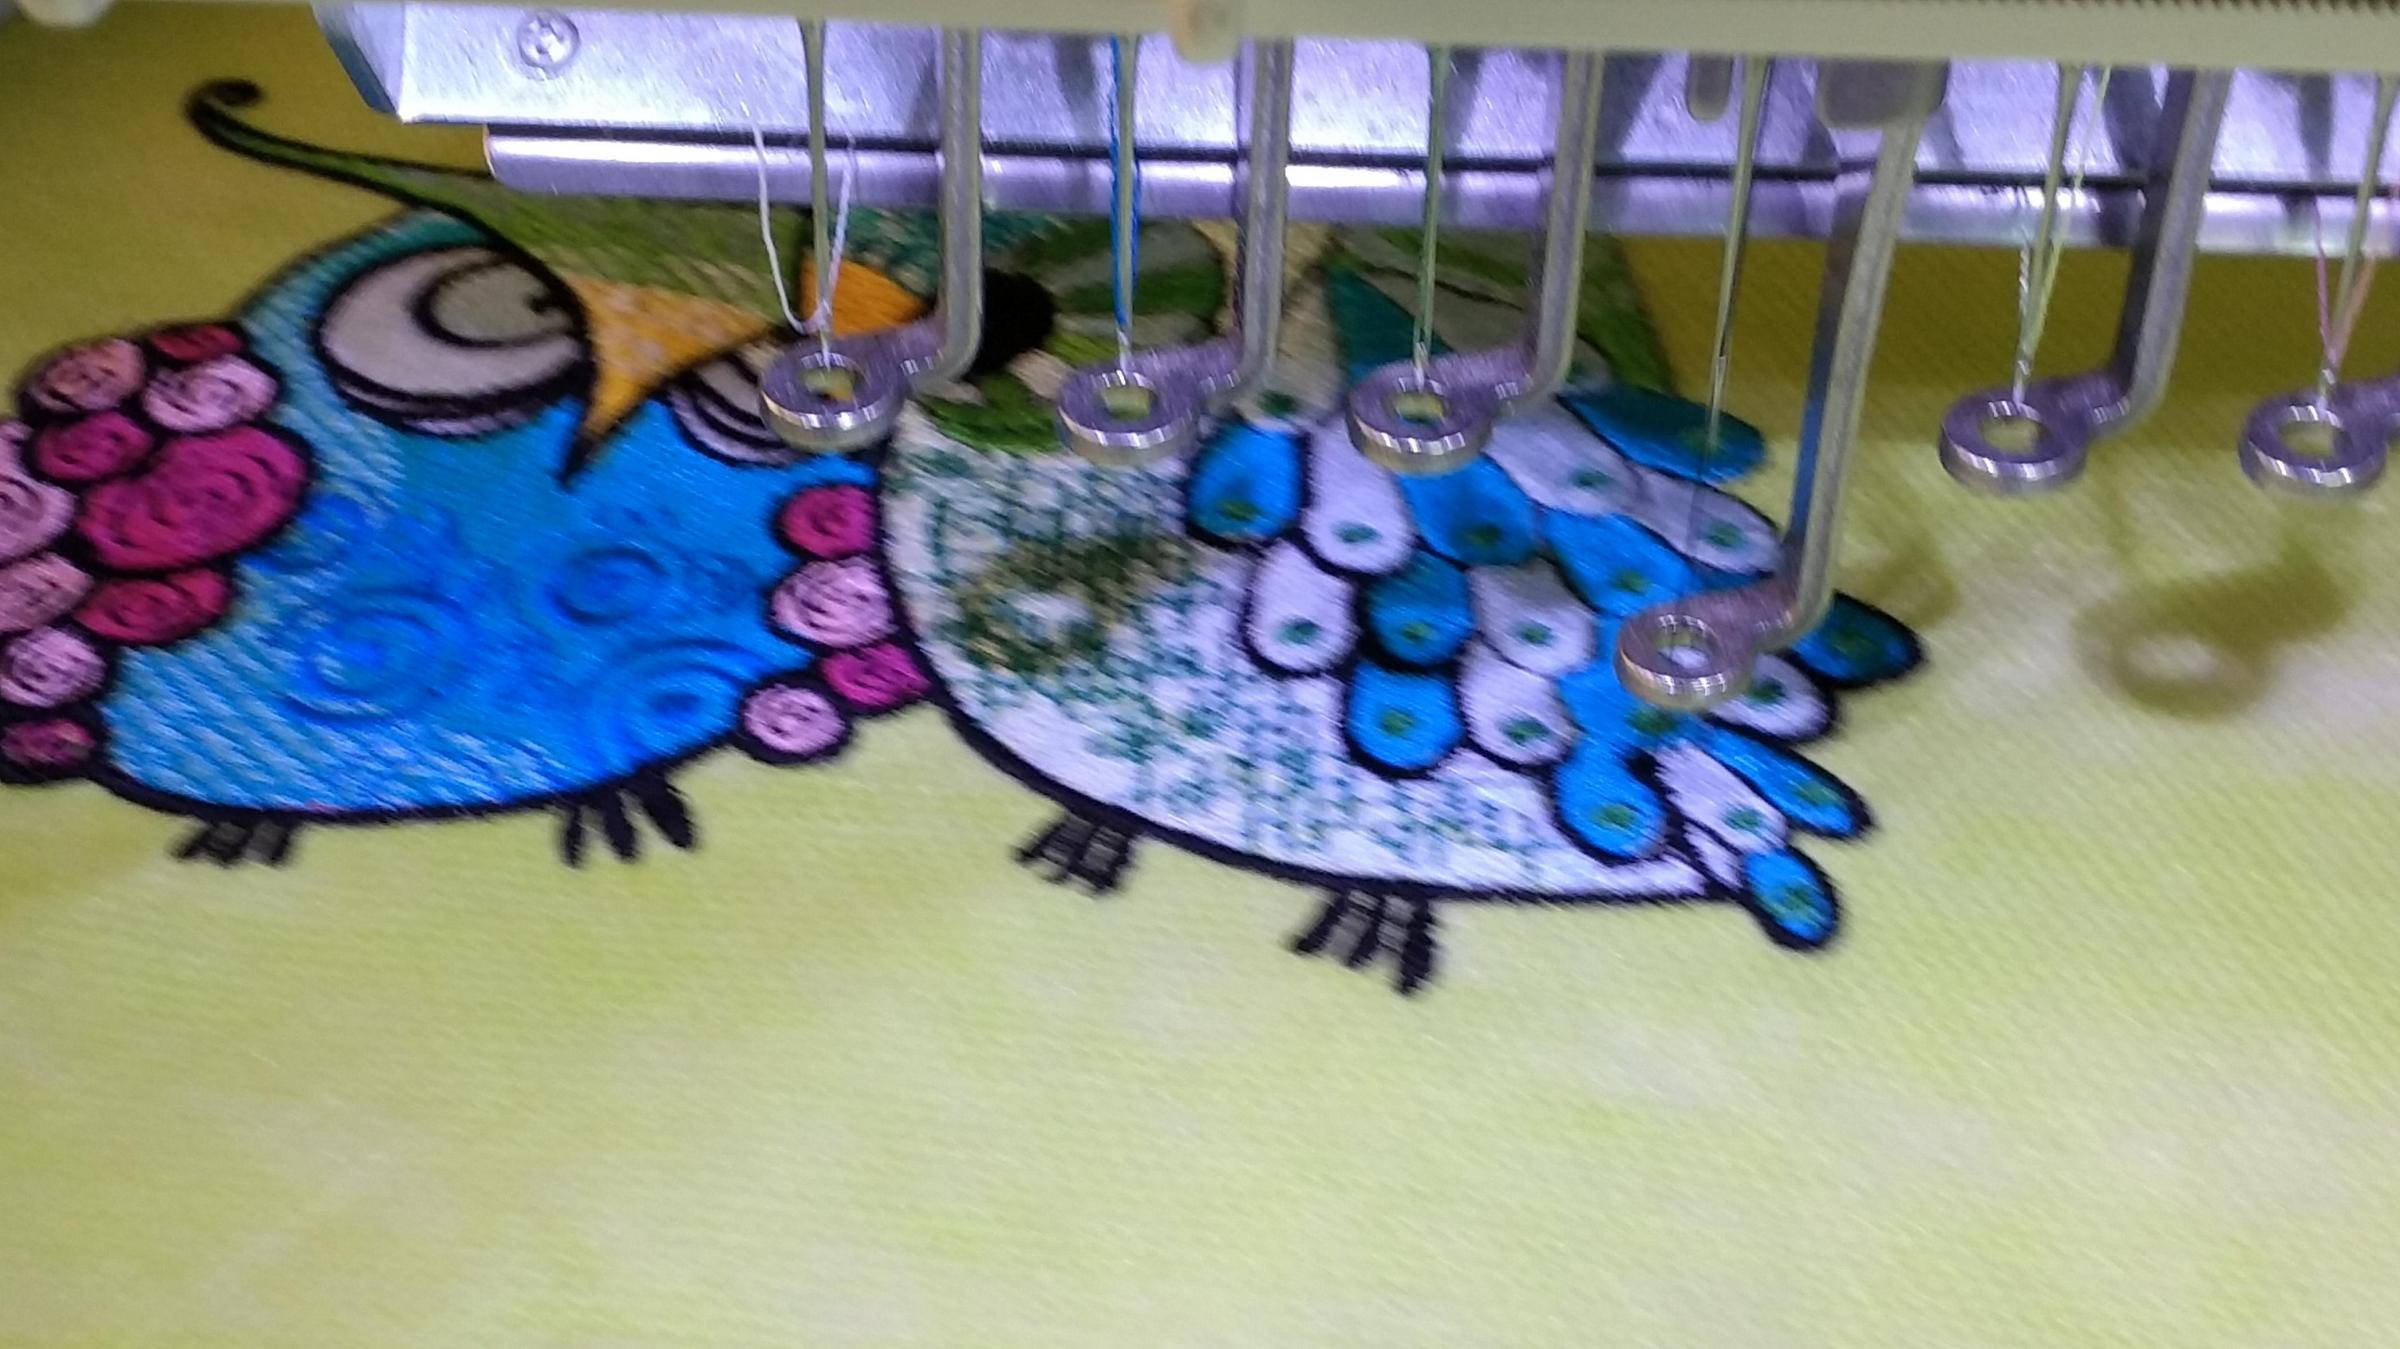 Grouсhy owls embroidery design in progress